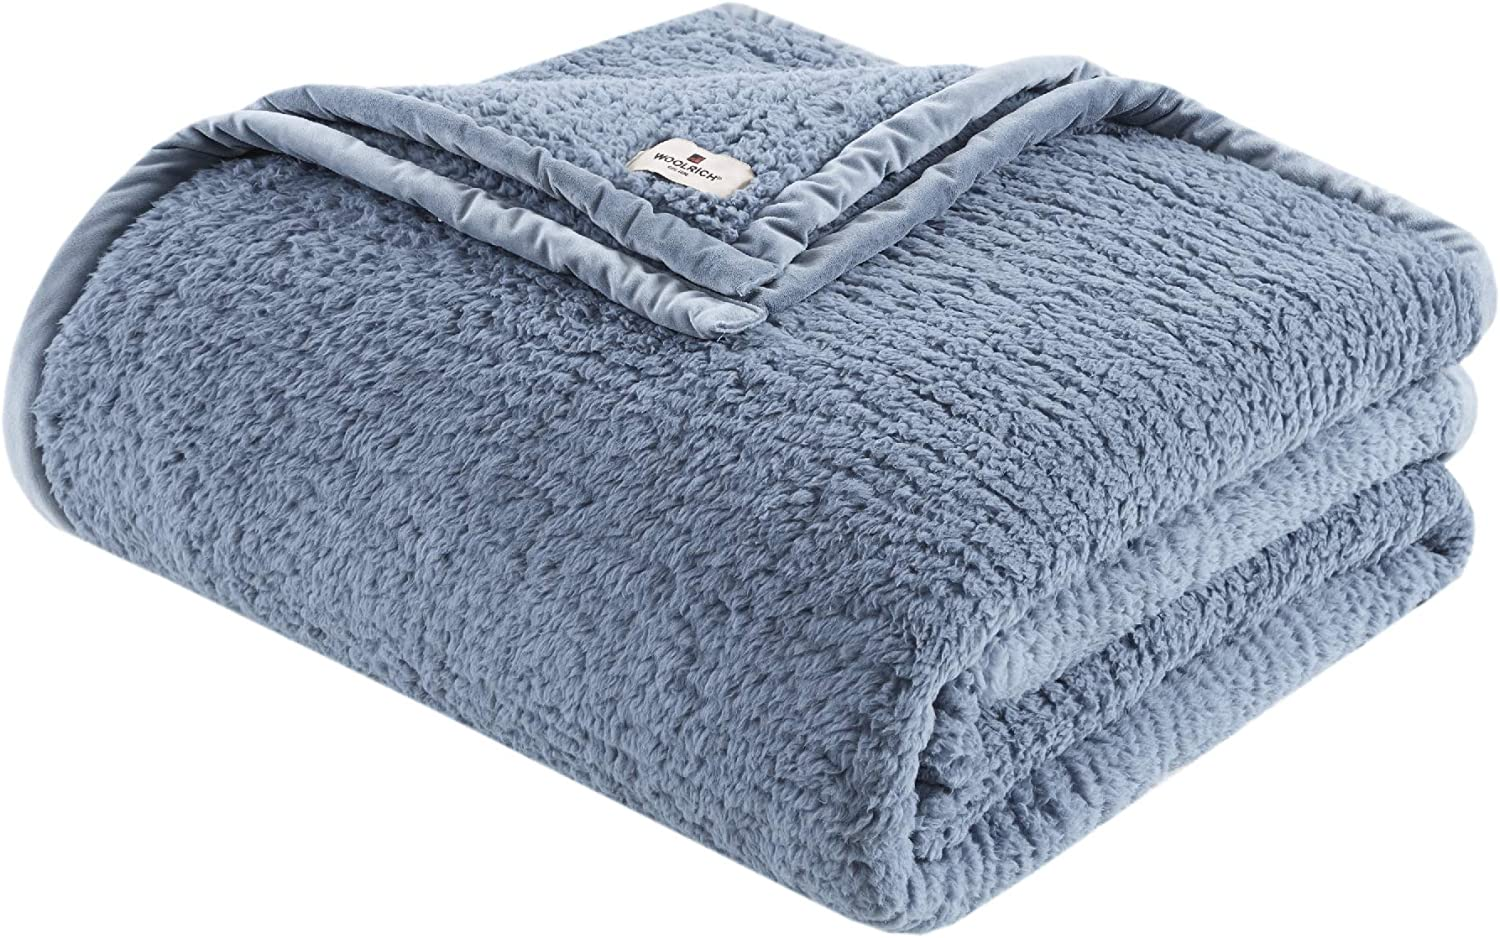 Woolrich Blankets Black Friday Deal